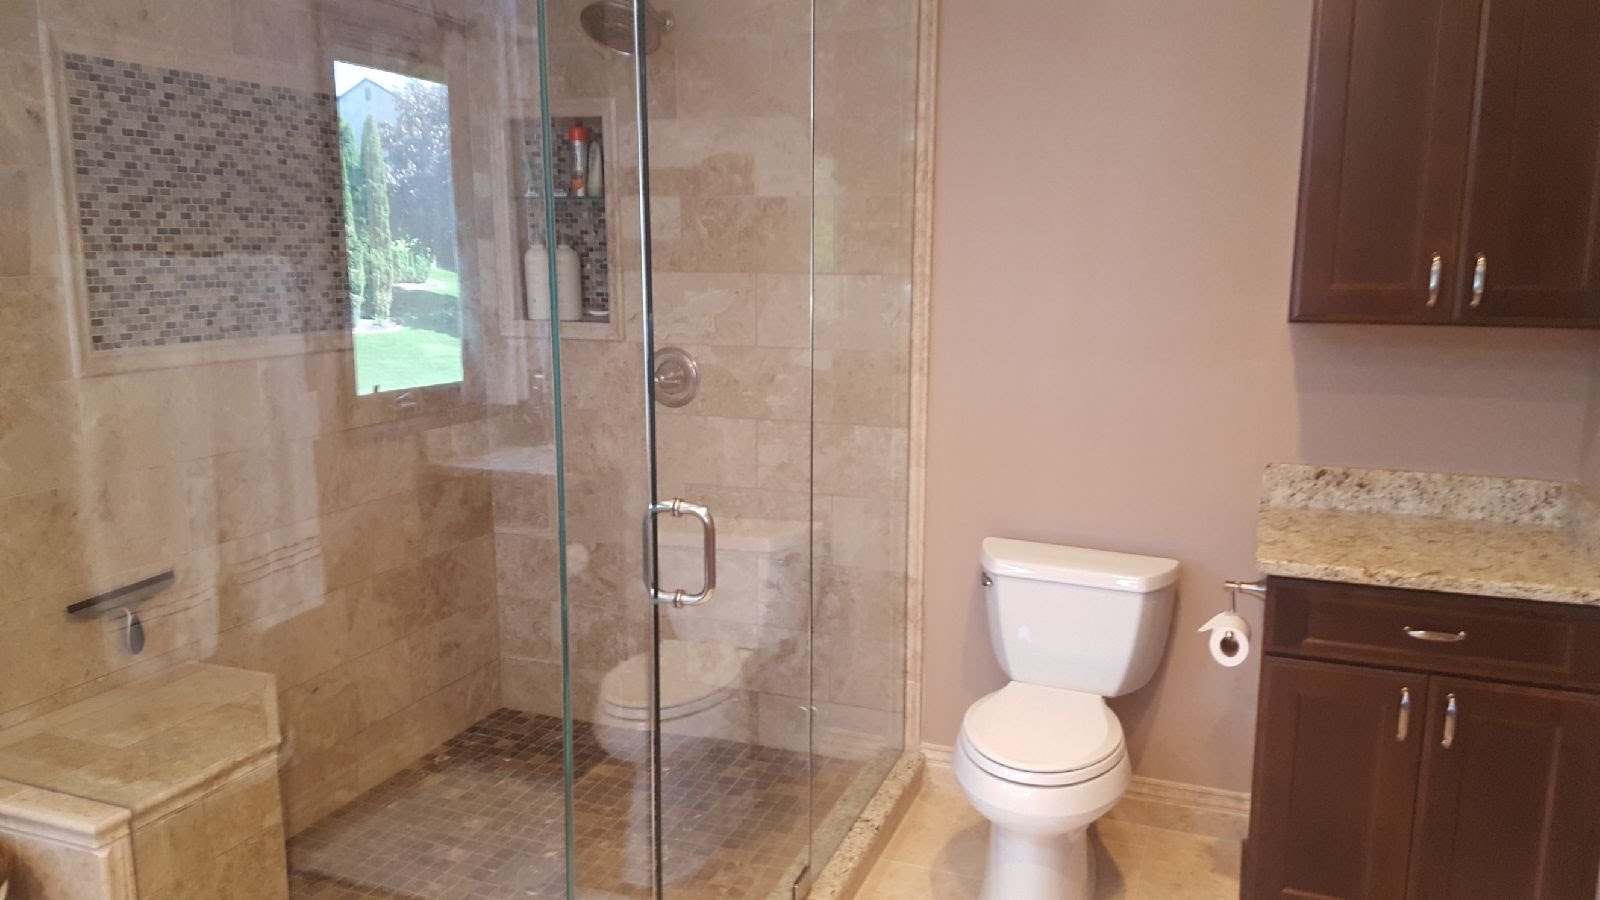 Clean Shower Glass and Toilet area